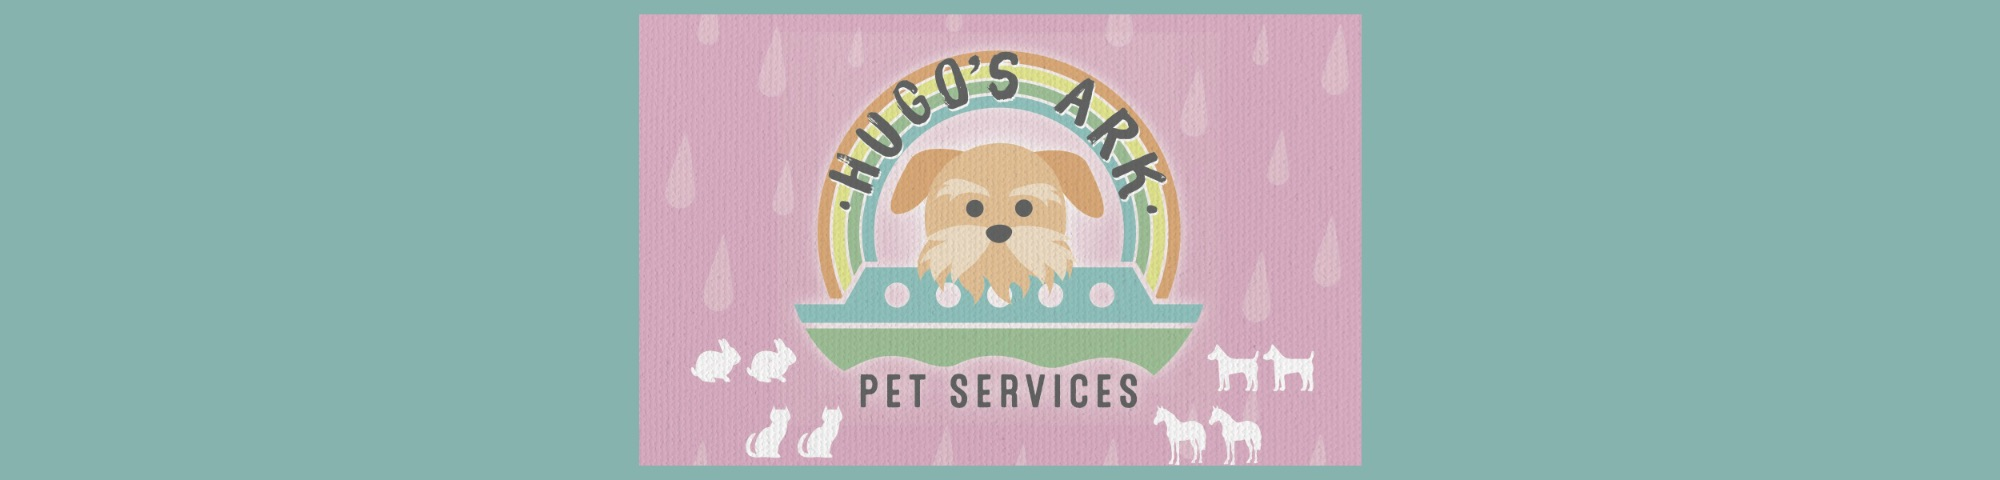 Hugo's Ark Pet Services for Happy Pets